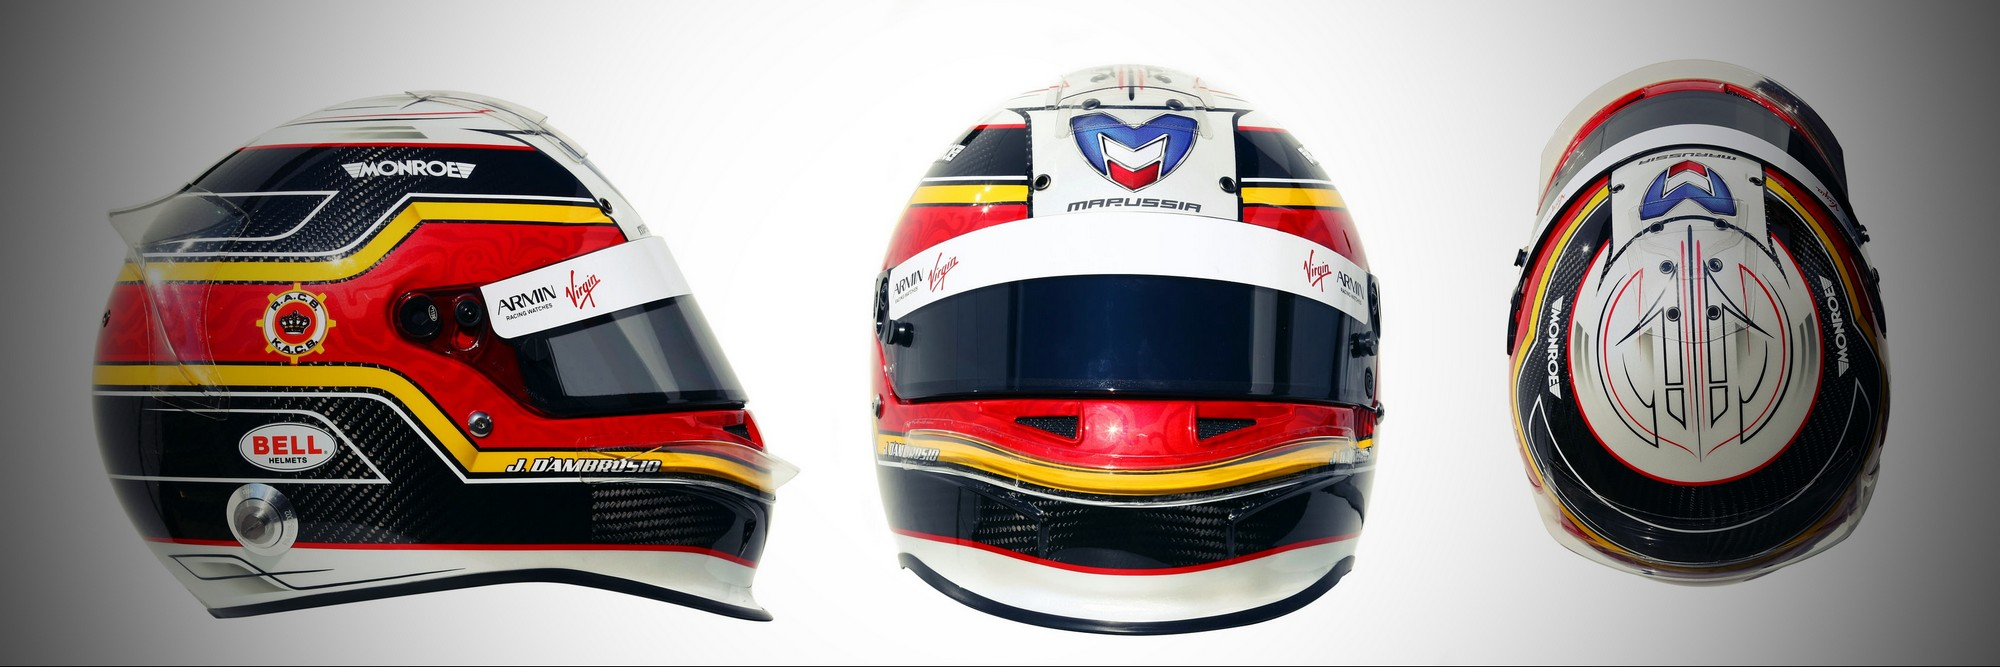 Шлем Жерома д'Амброзио на сезон 2011 года | 2011 helmet of Jerome d'Ambrosio